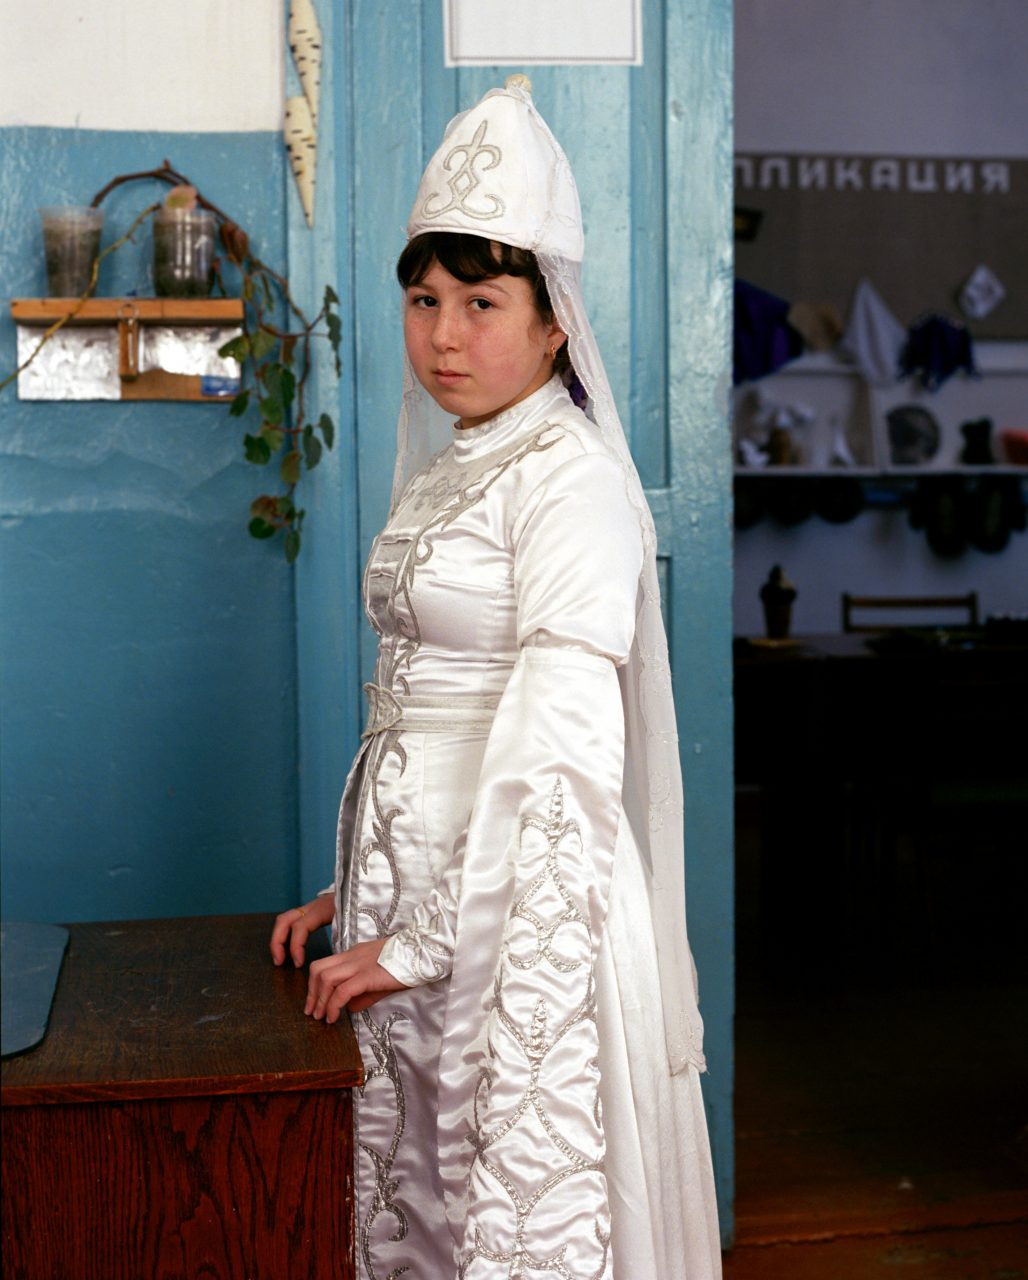 Russkie #90, c-print on dibond,100 x 85 cm, 2007